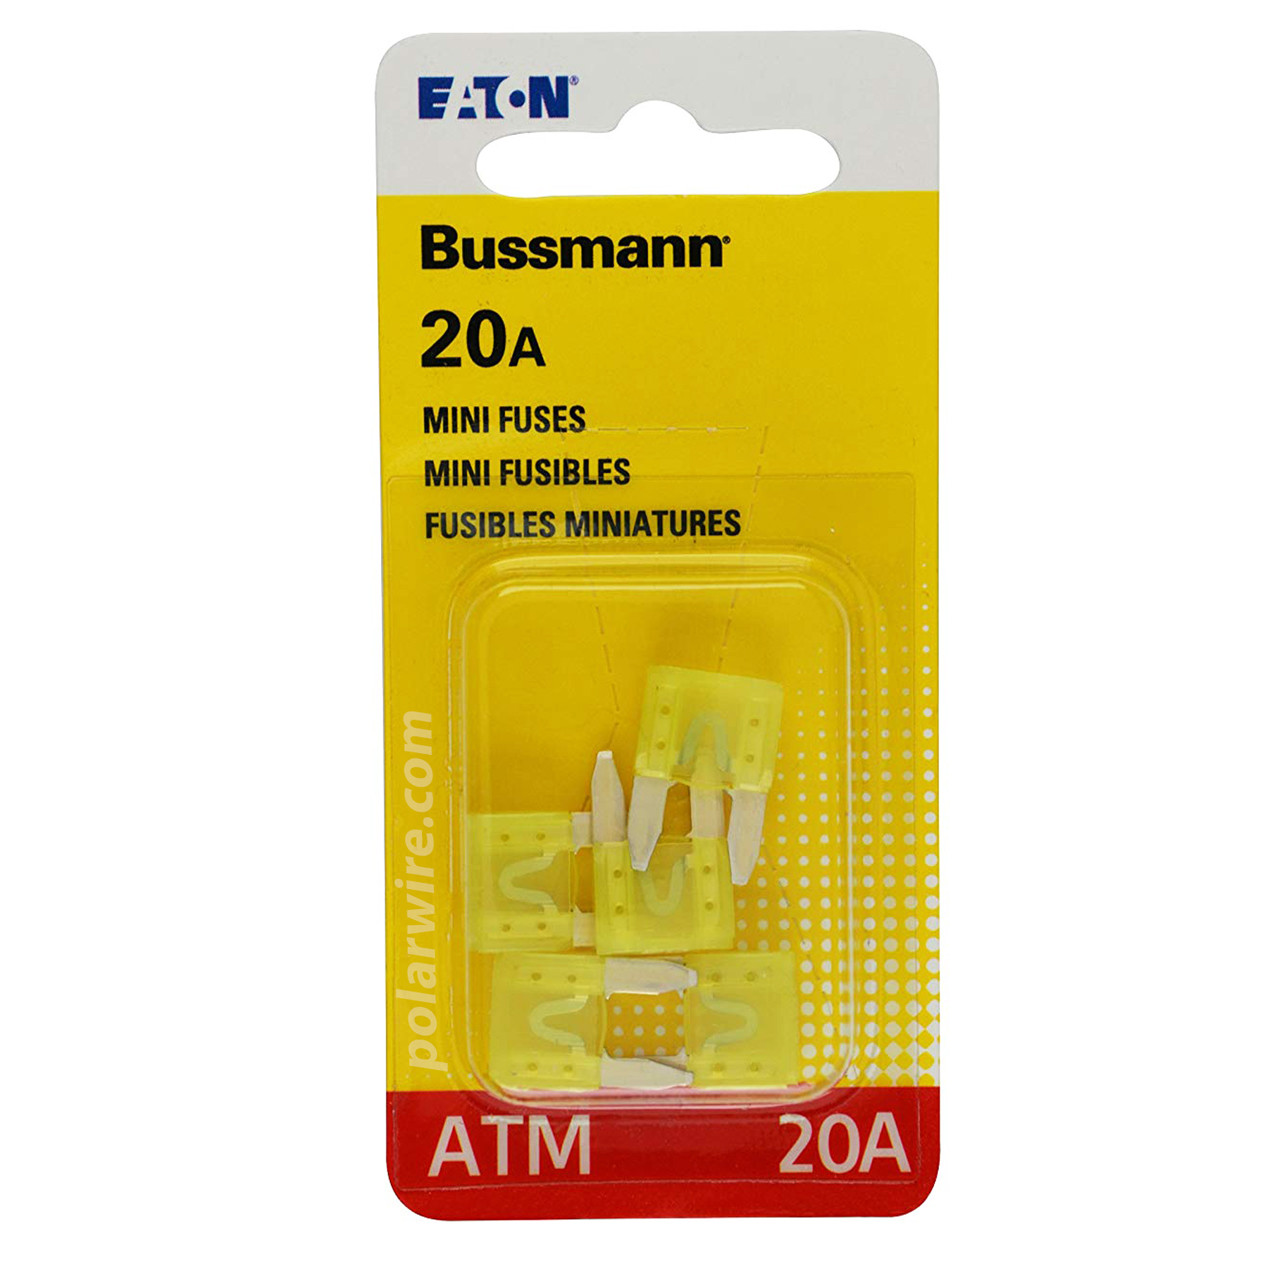 ATM mini blade 20 amp fuse yellow, Bussmann package of 5